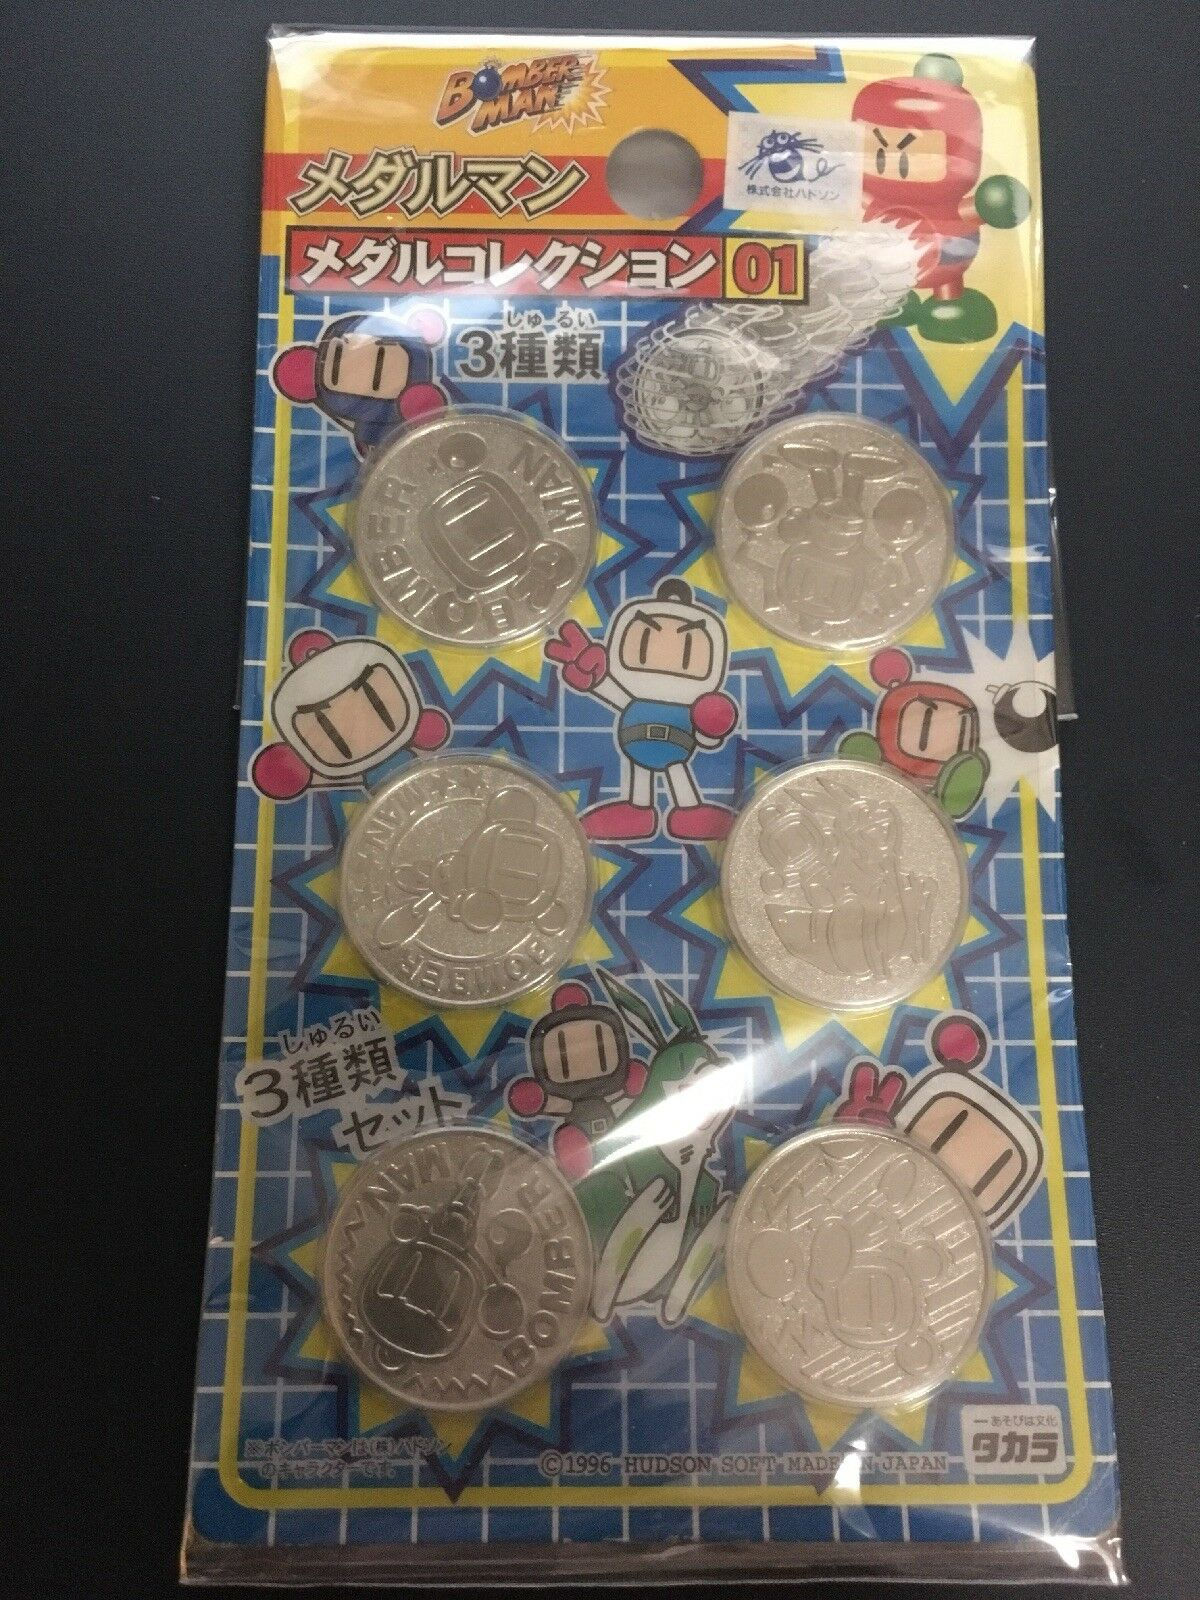 Bomberman NES medal set Japanese  toy coin token token token e5a792